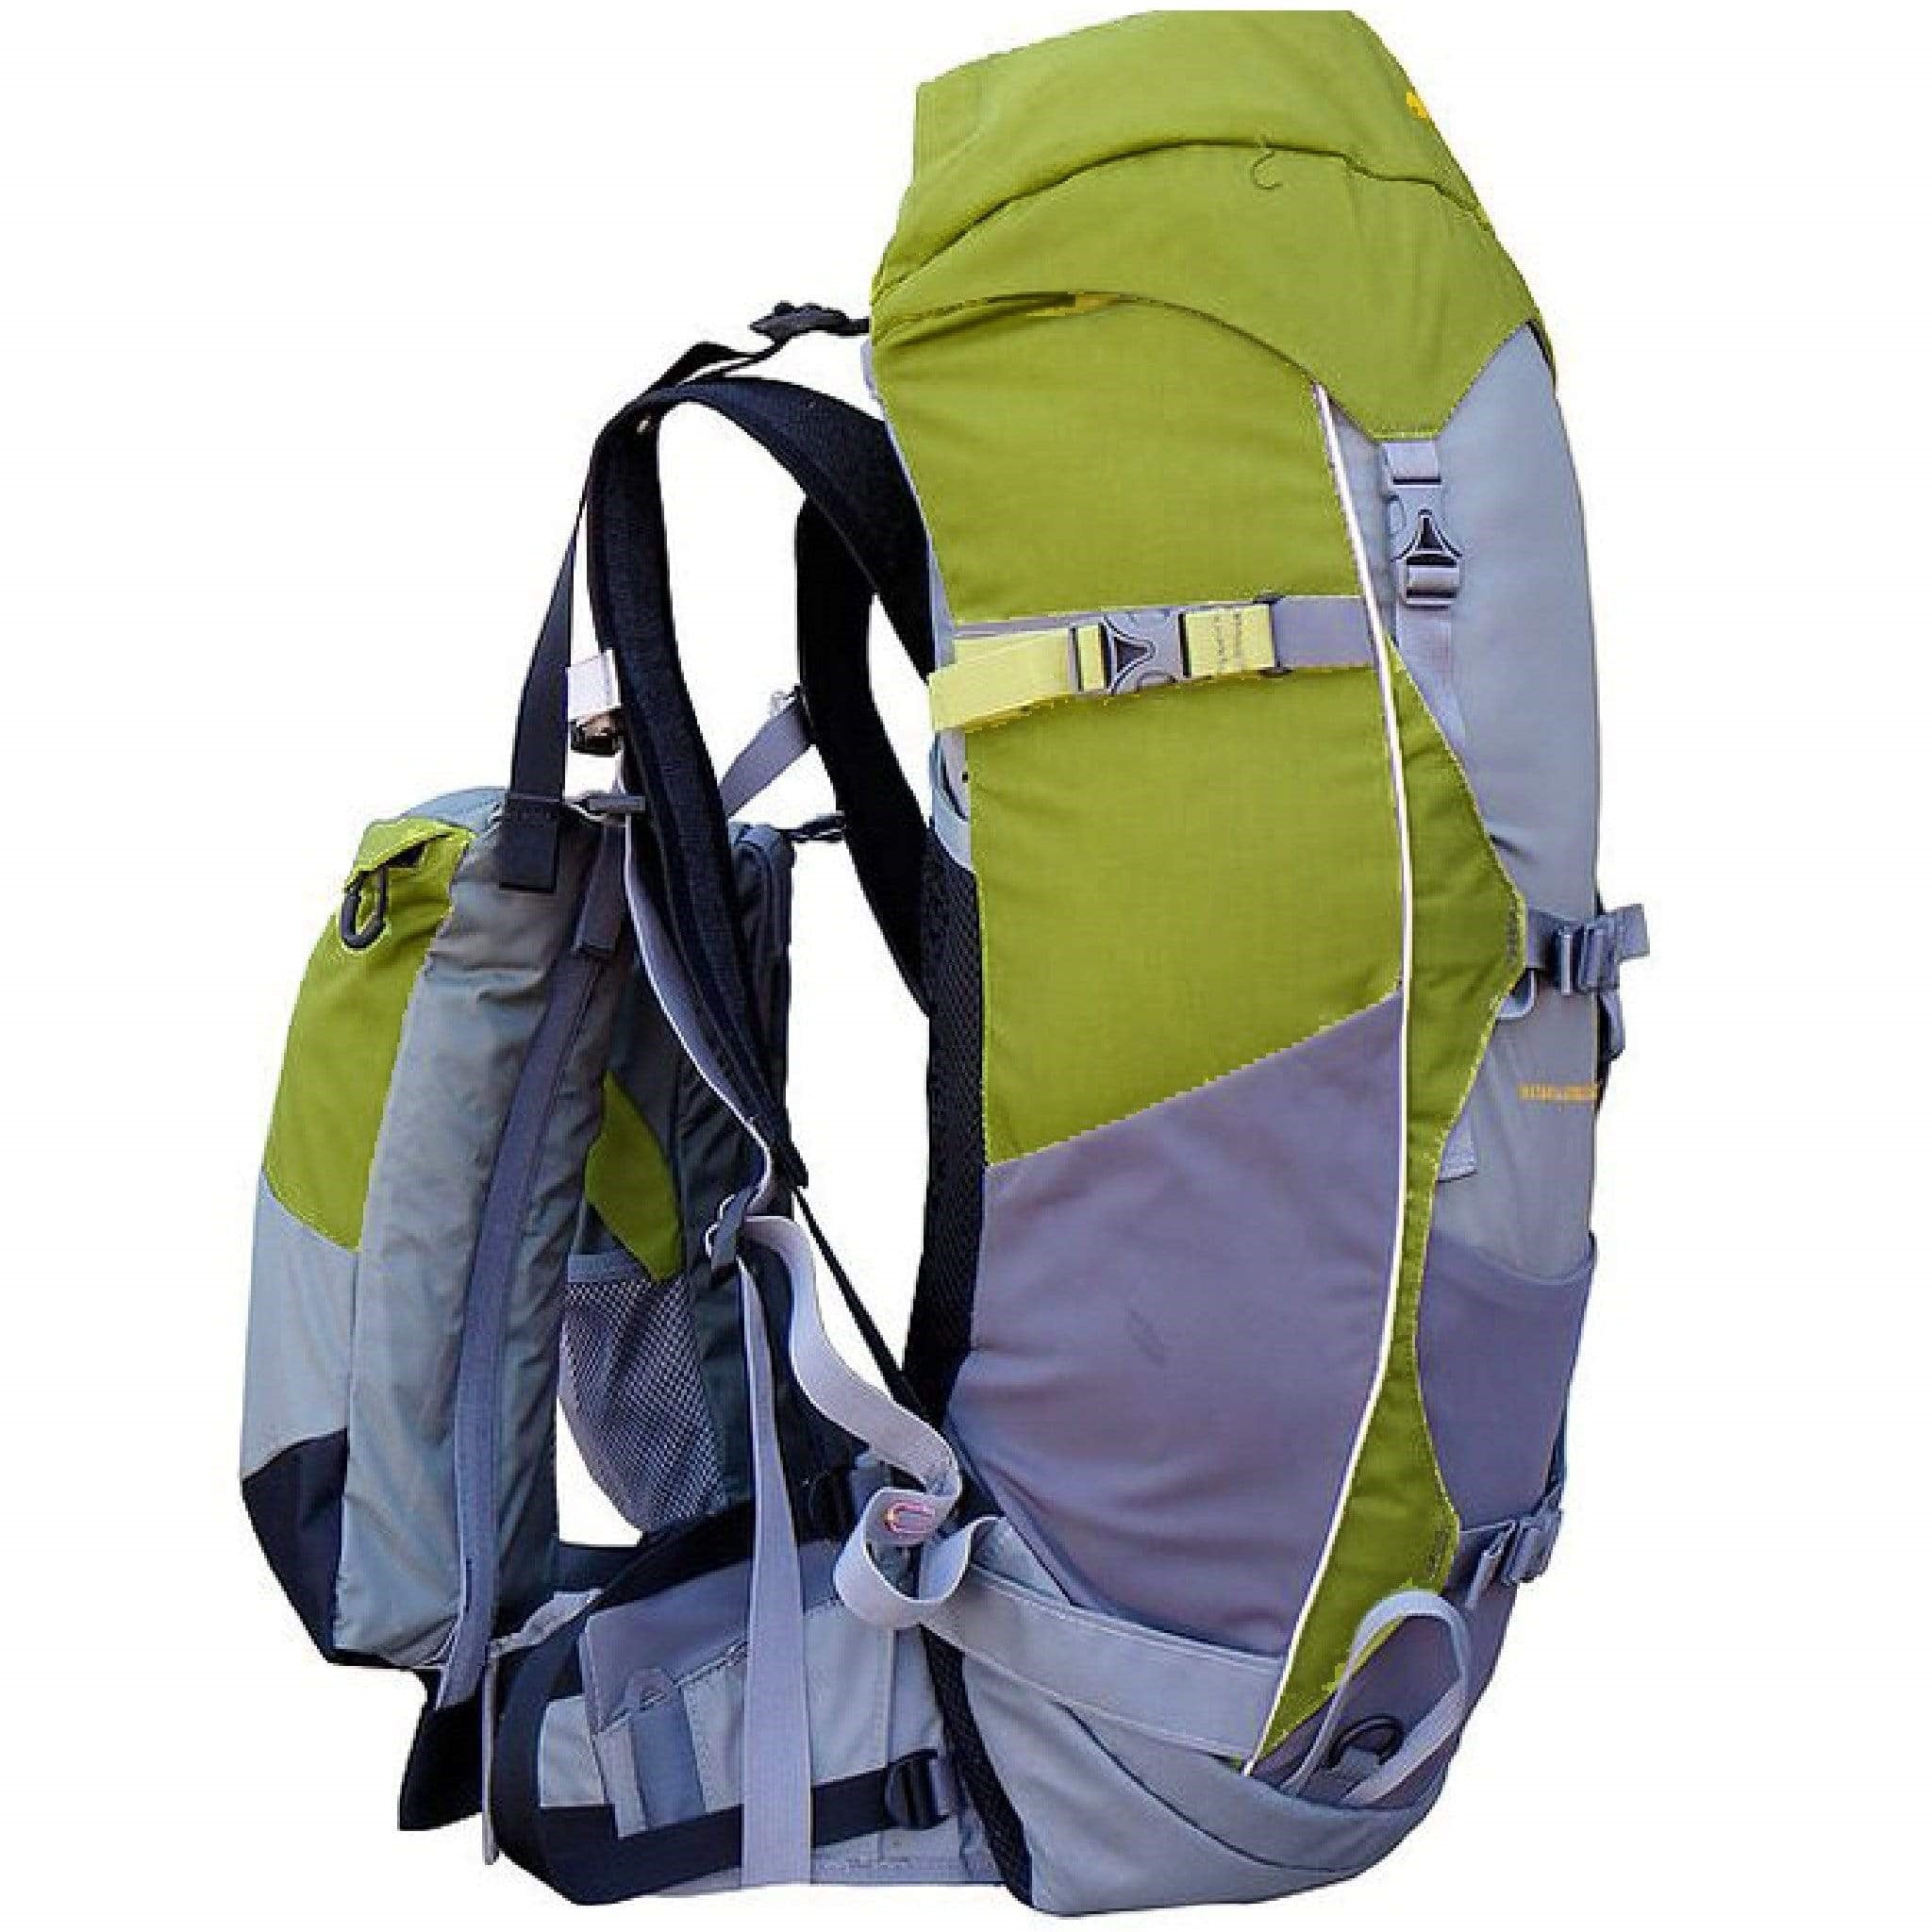 Reasons to Invest in a Quality Hiking Backpack